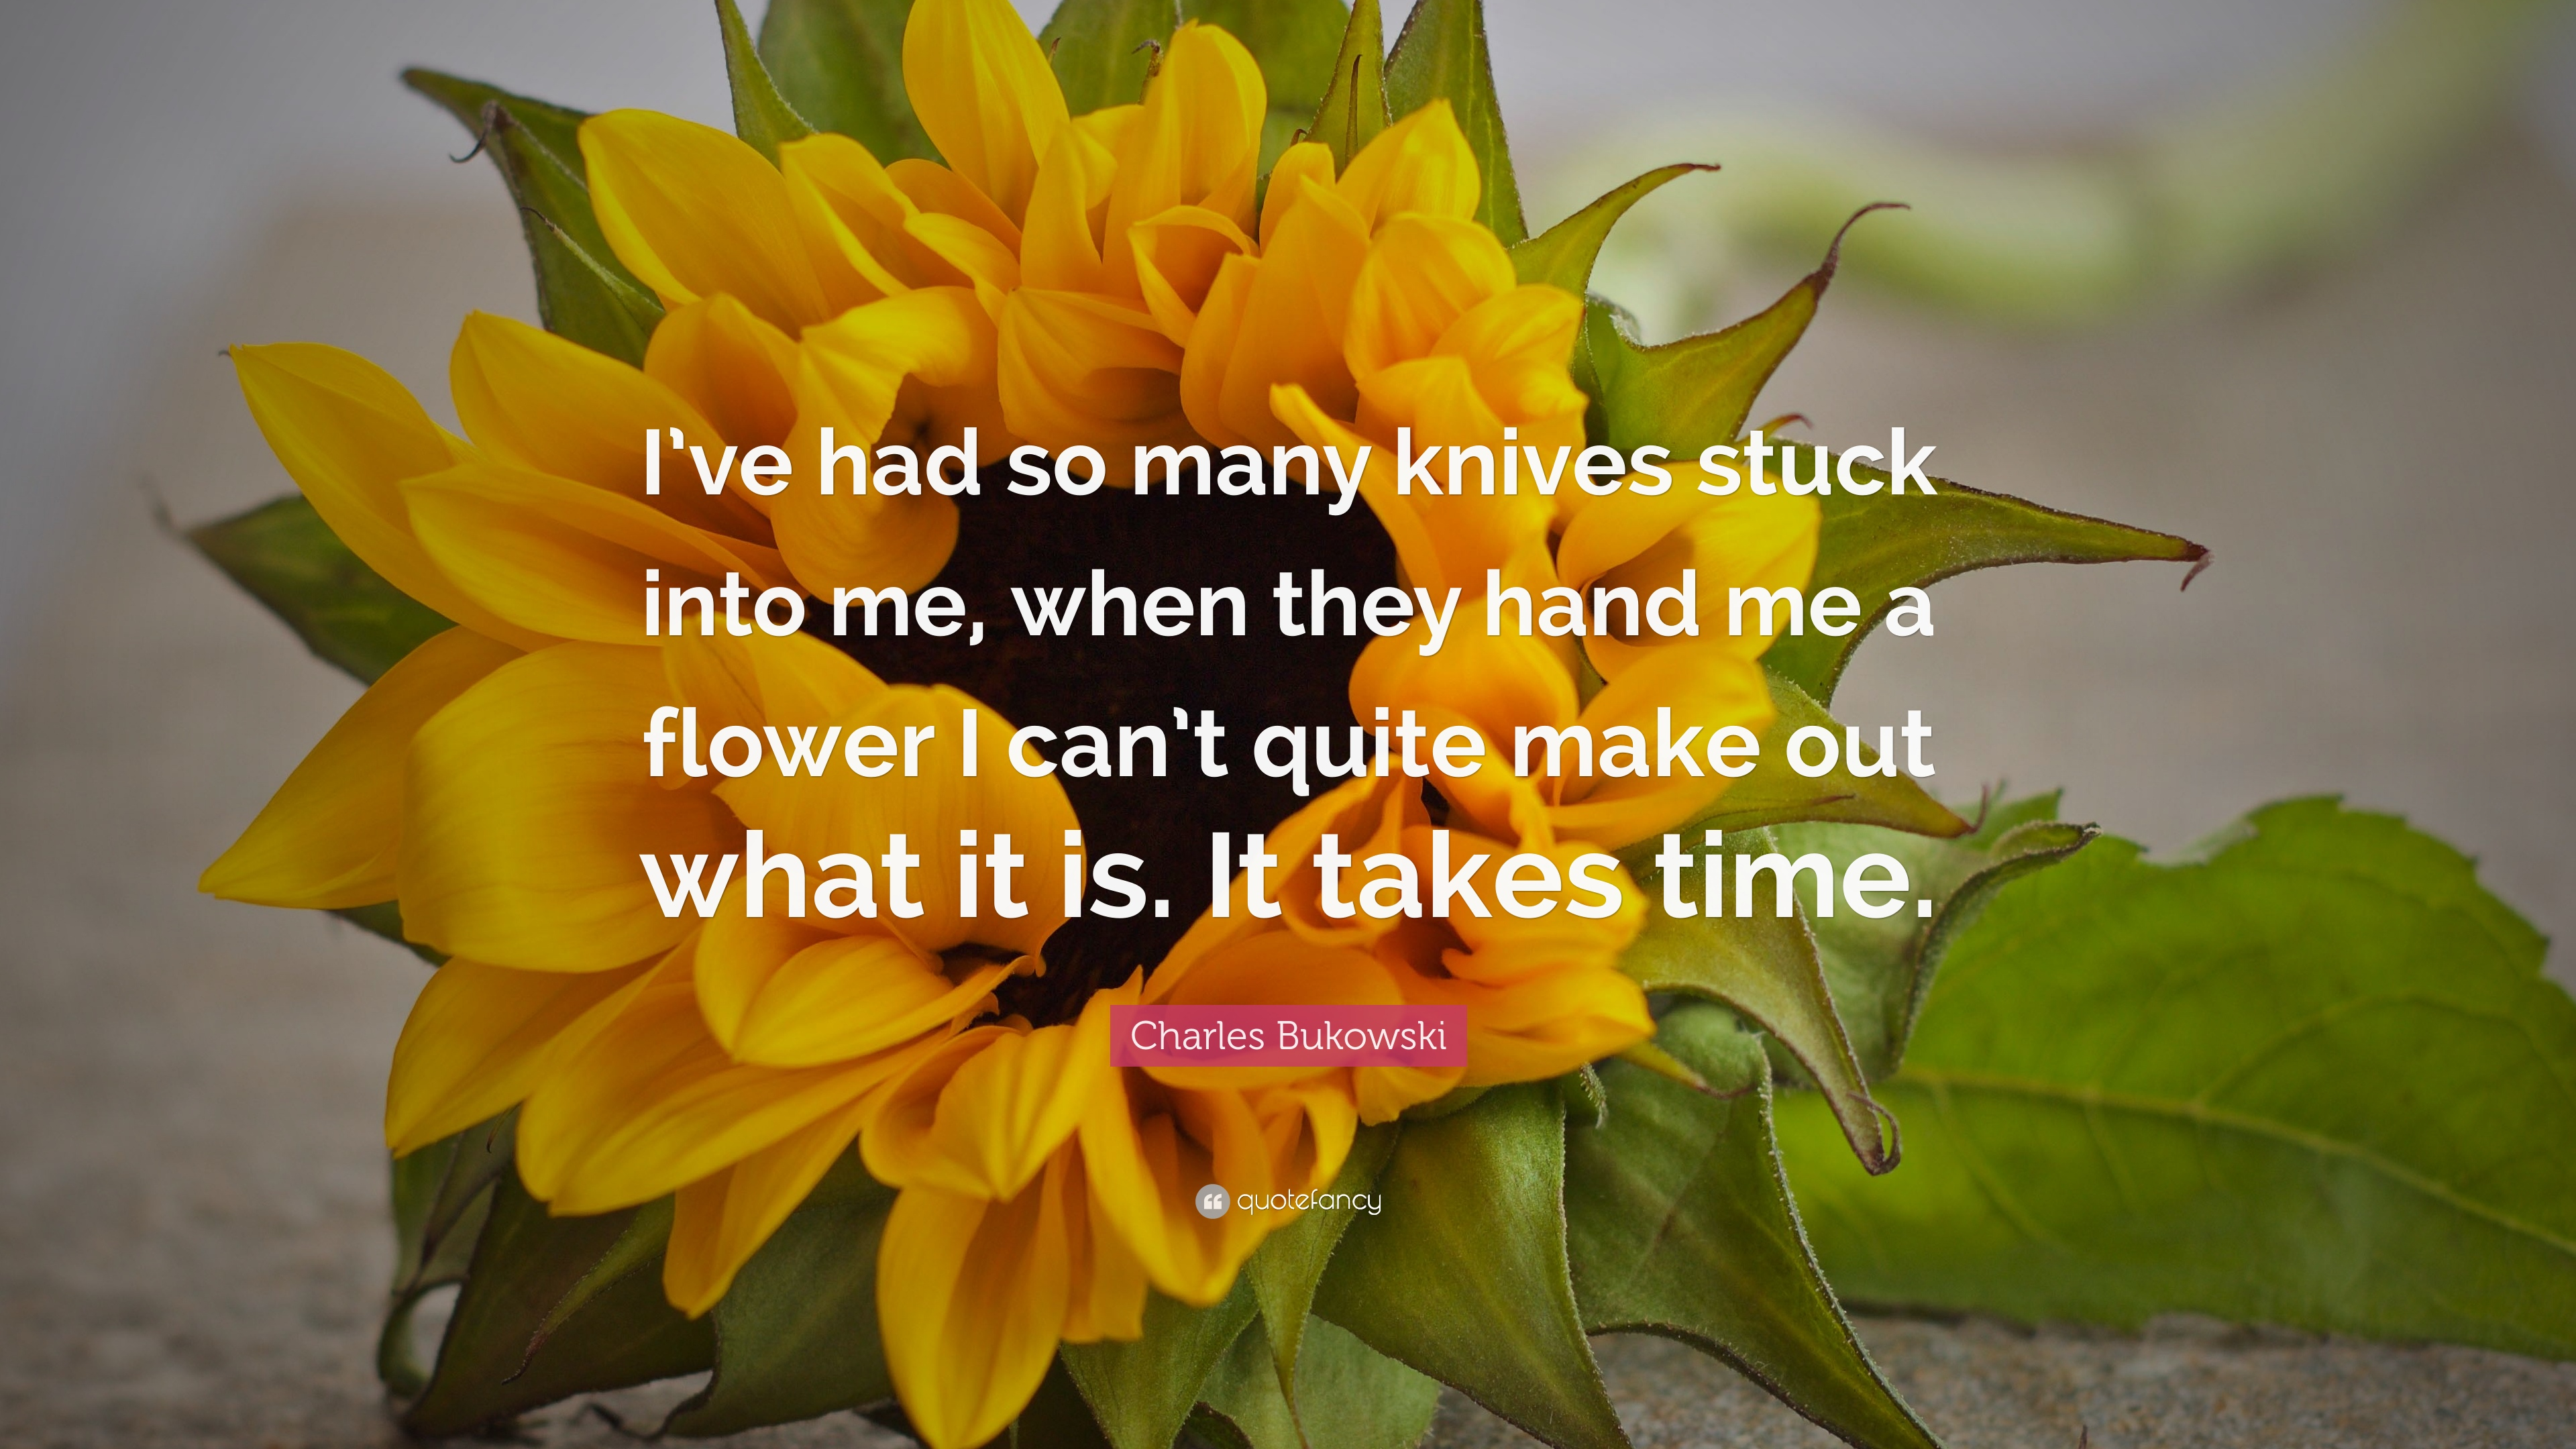 I've had so many knives stuck into me, when they hand me a flower I can' t quite make out what it is. It takes time.'